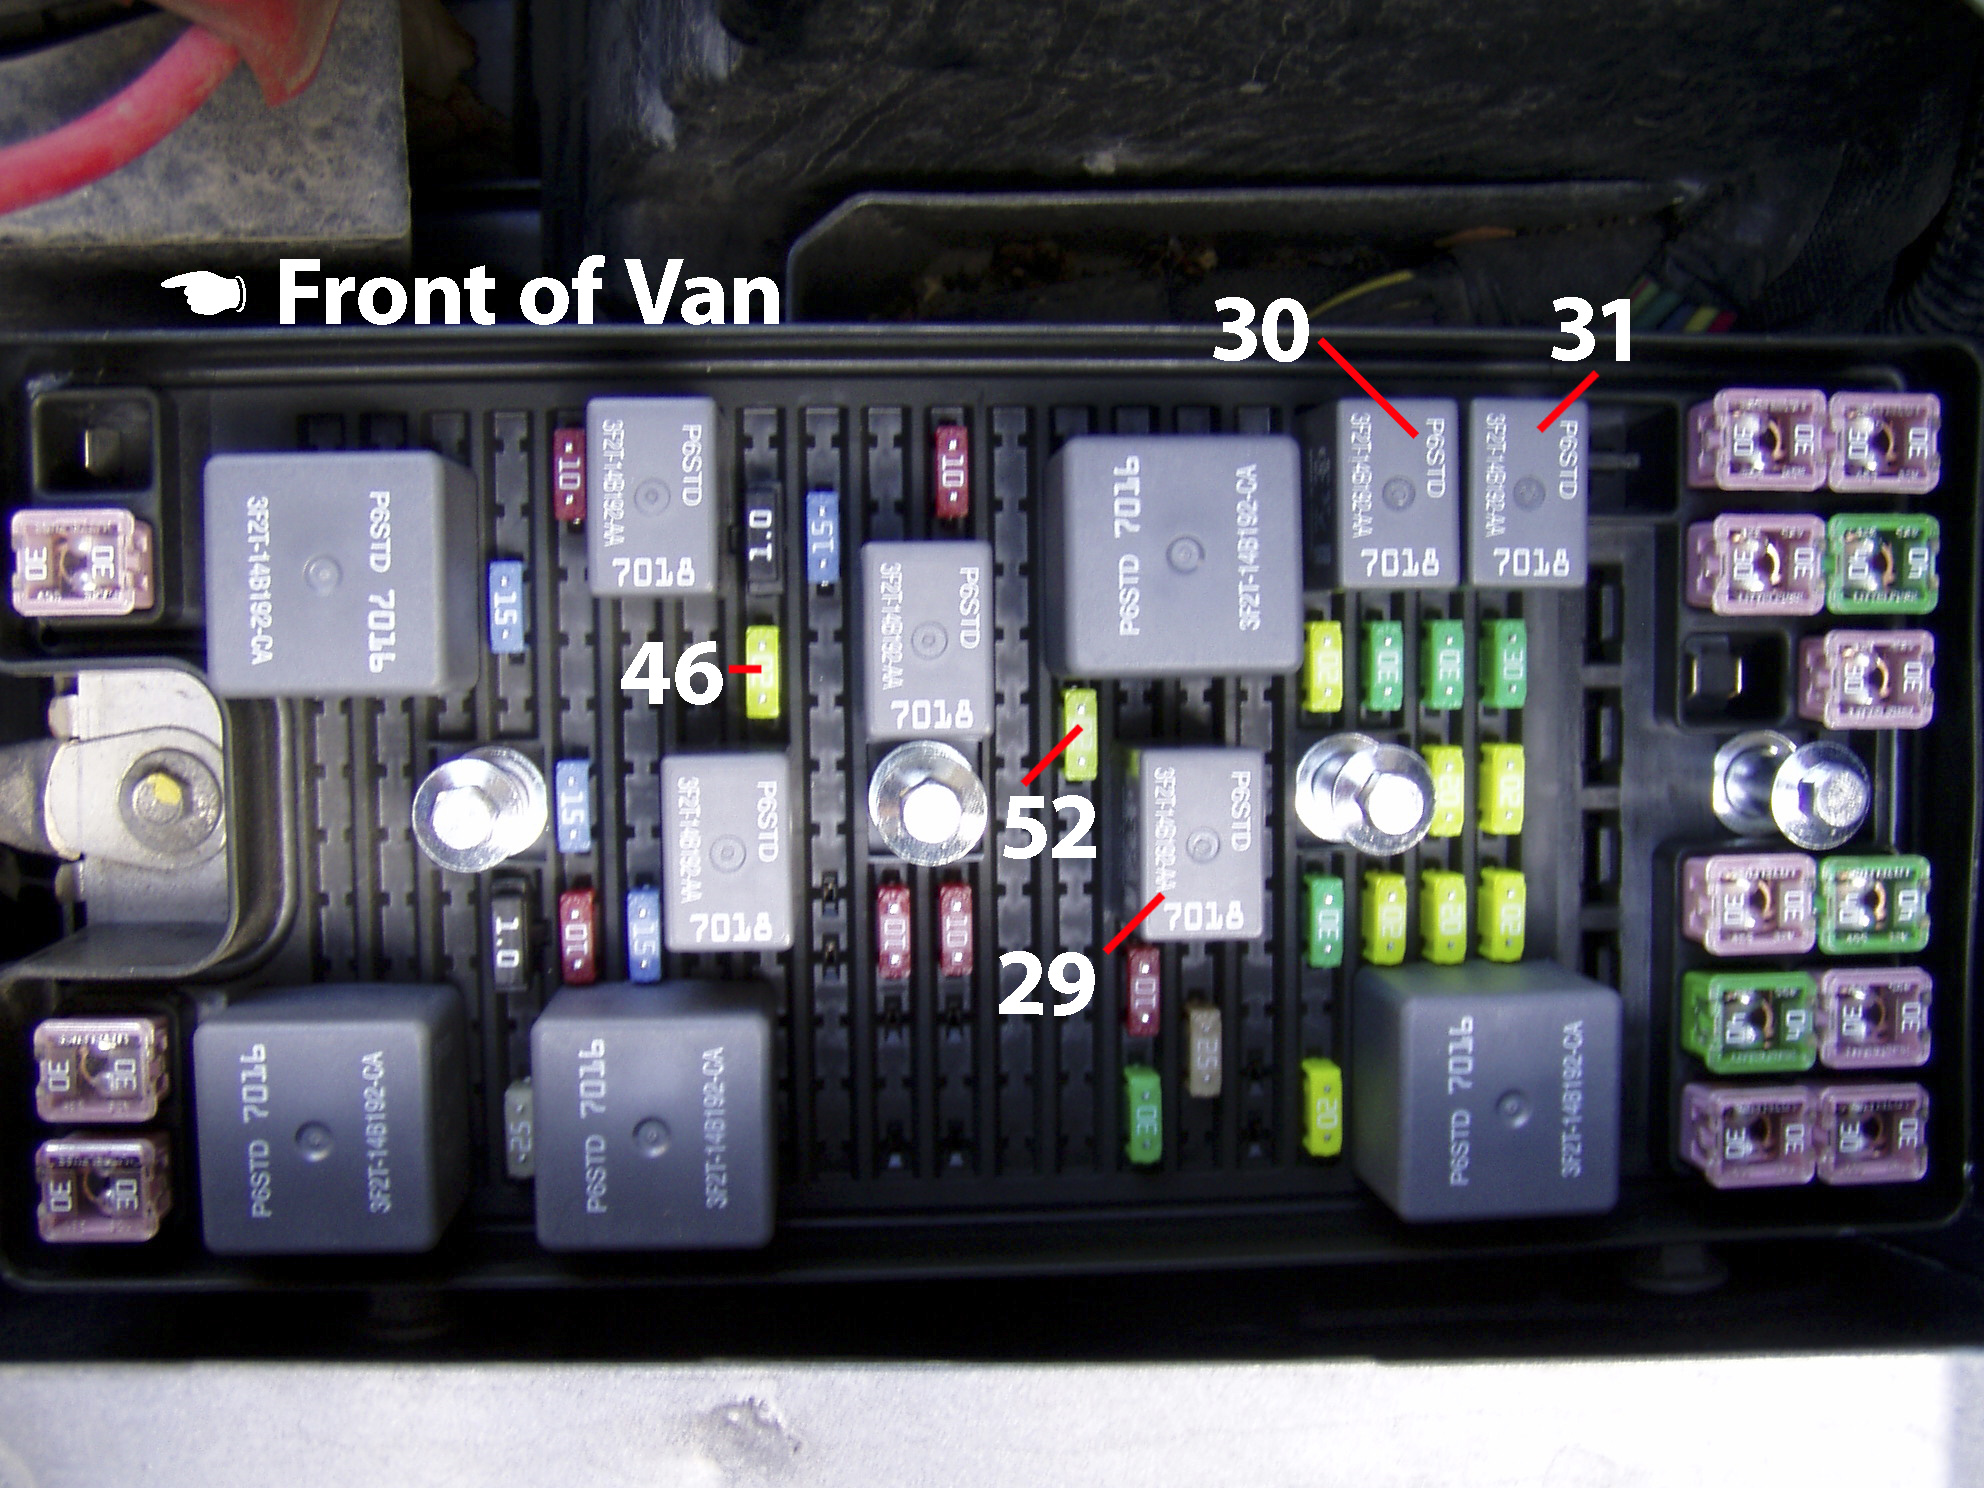 trailer wiring on the 2005 ford freestar davintosh rh davintosh com 2005 Ford Freestar Fuse Box Diagram 2004 Ford Escape Fuse Box Diagram